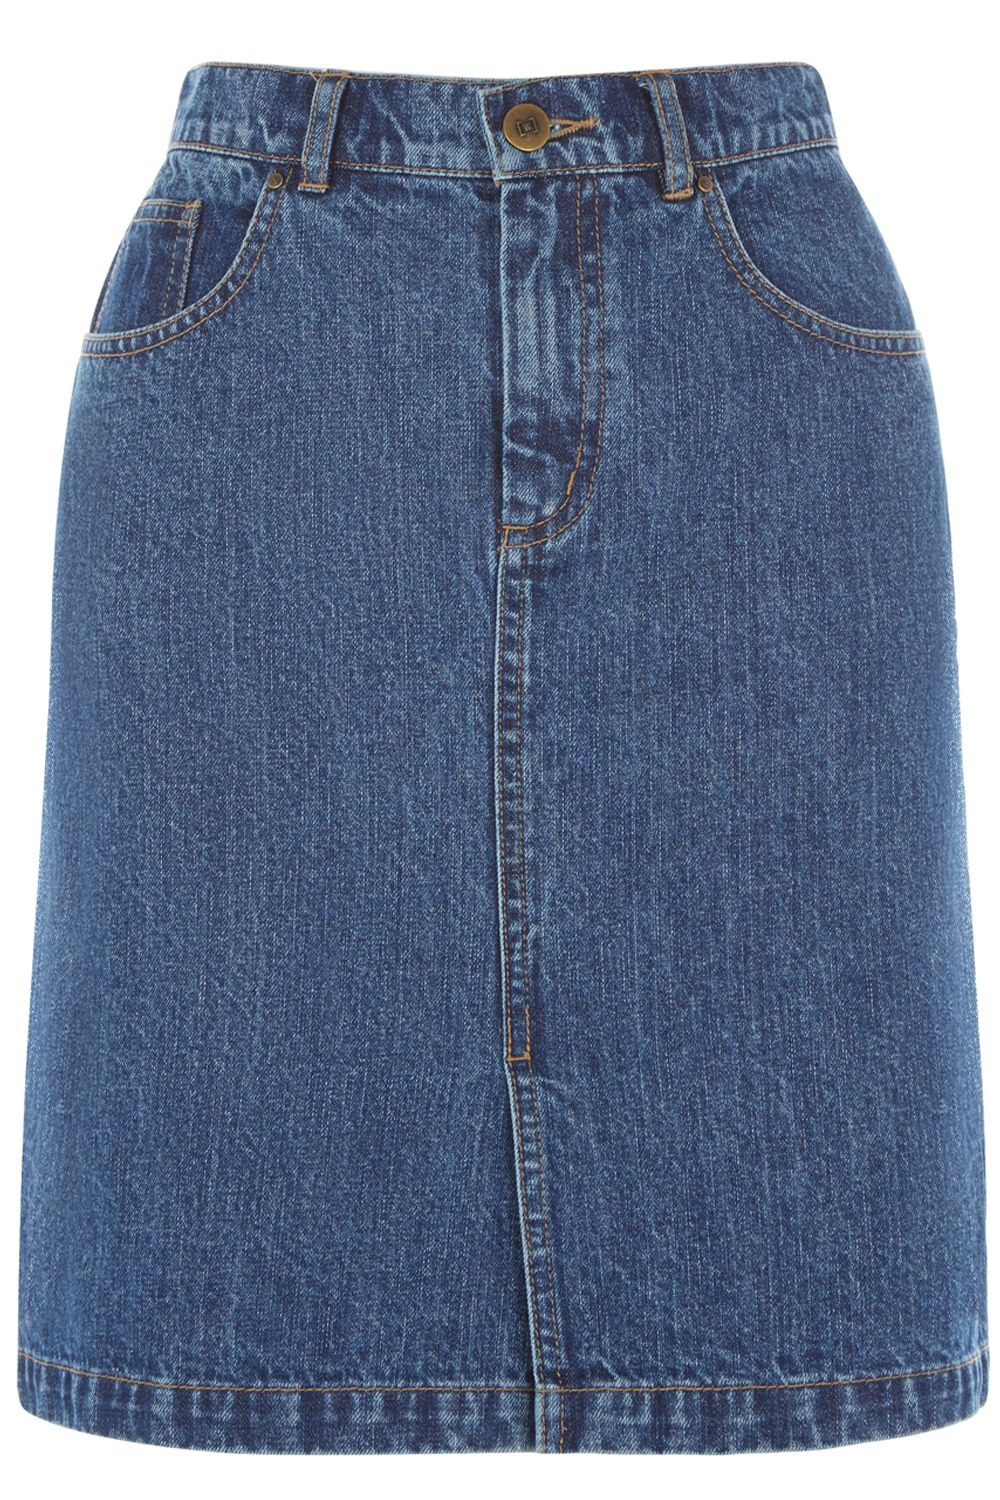 Warehouse Denim Split Front Skirt, Denim